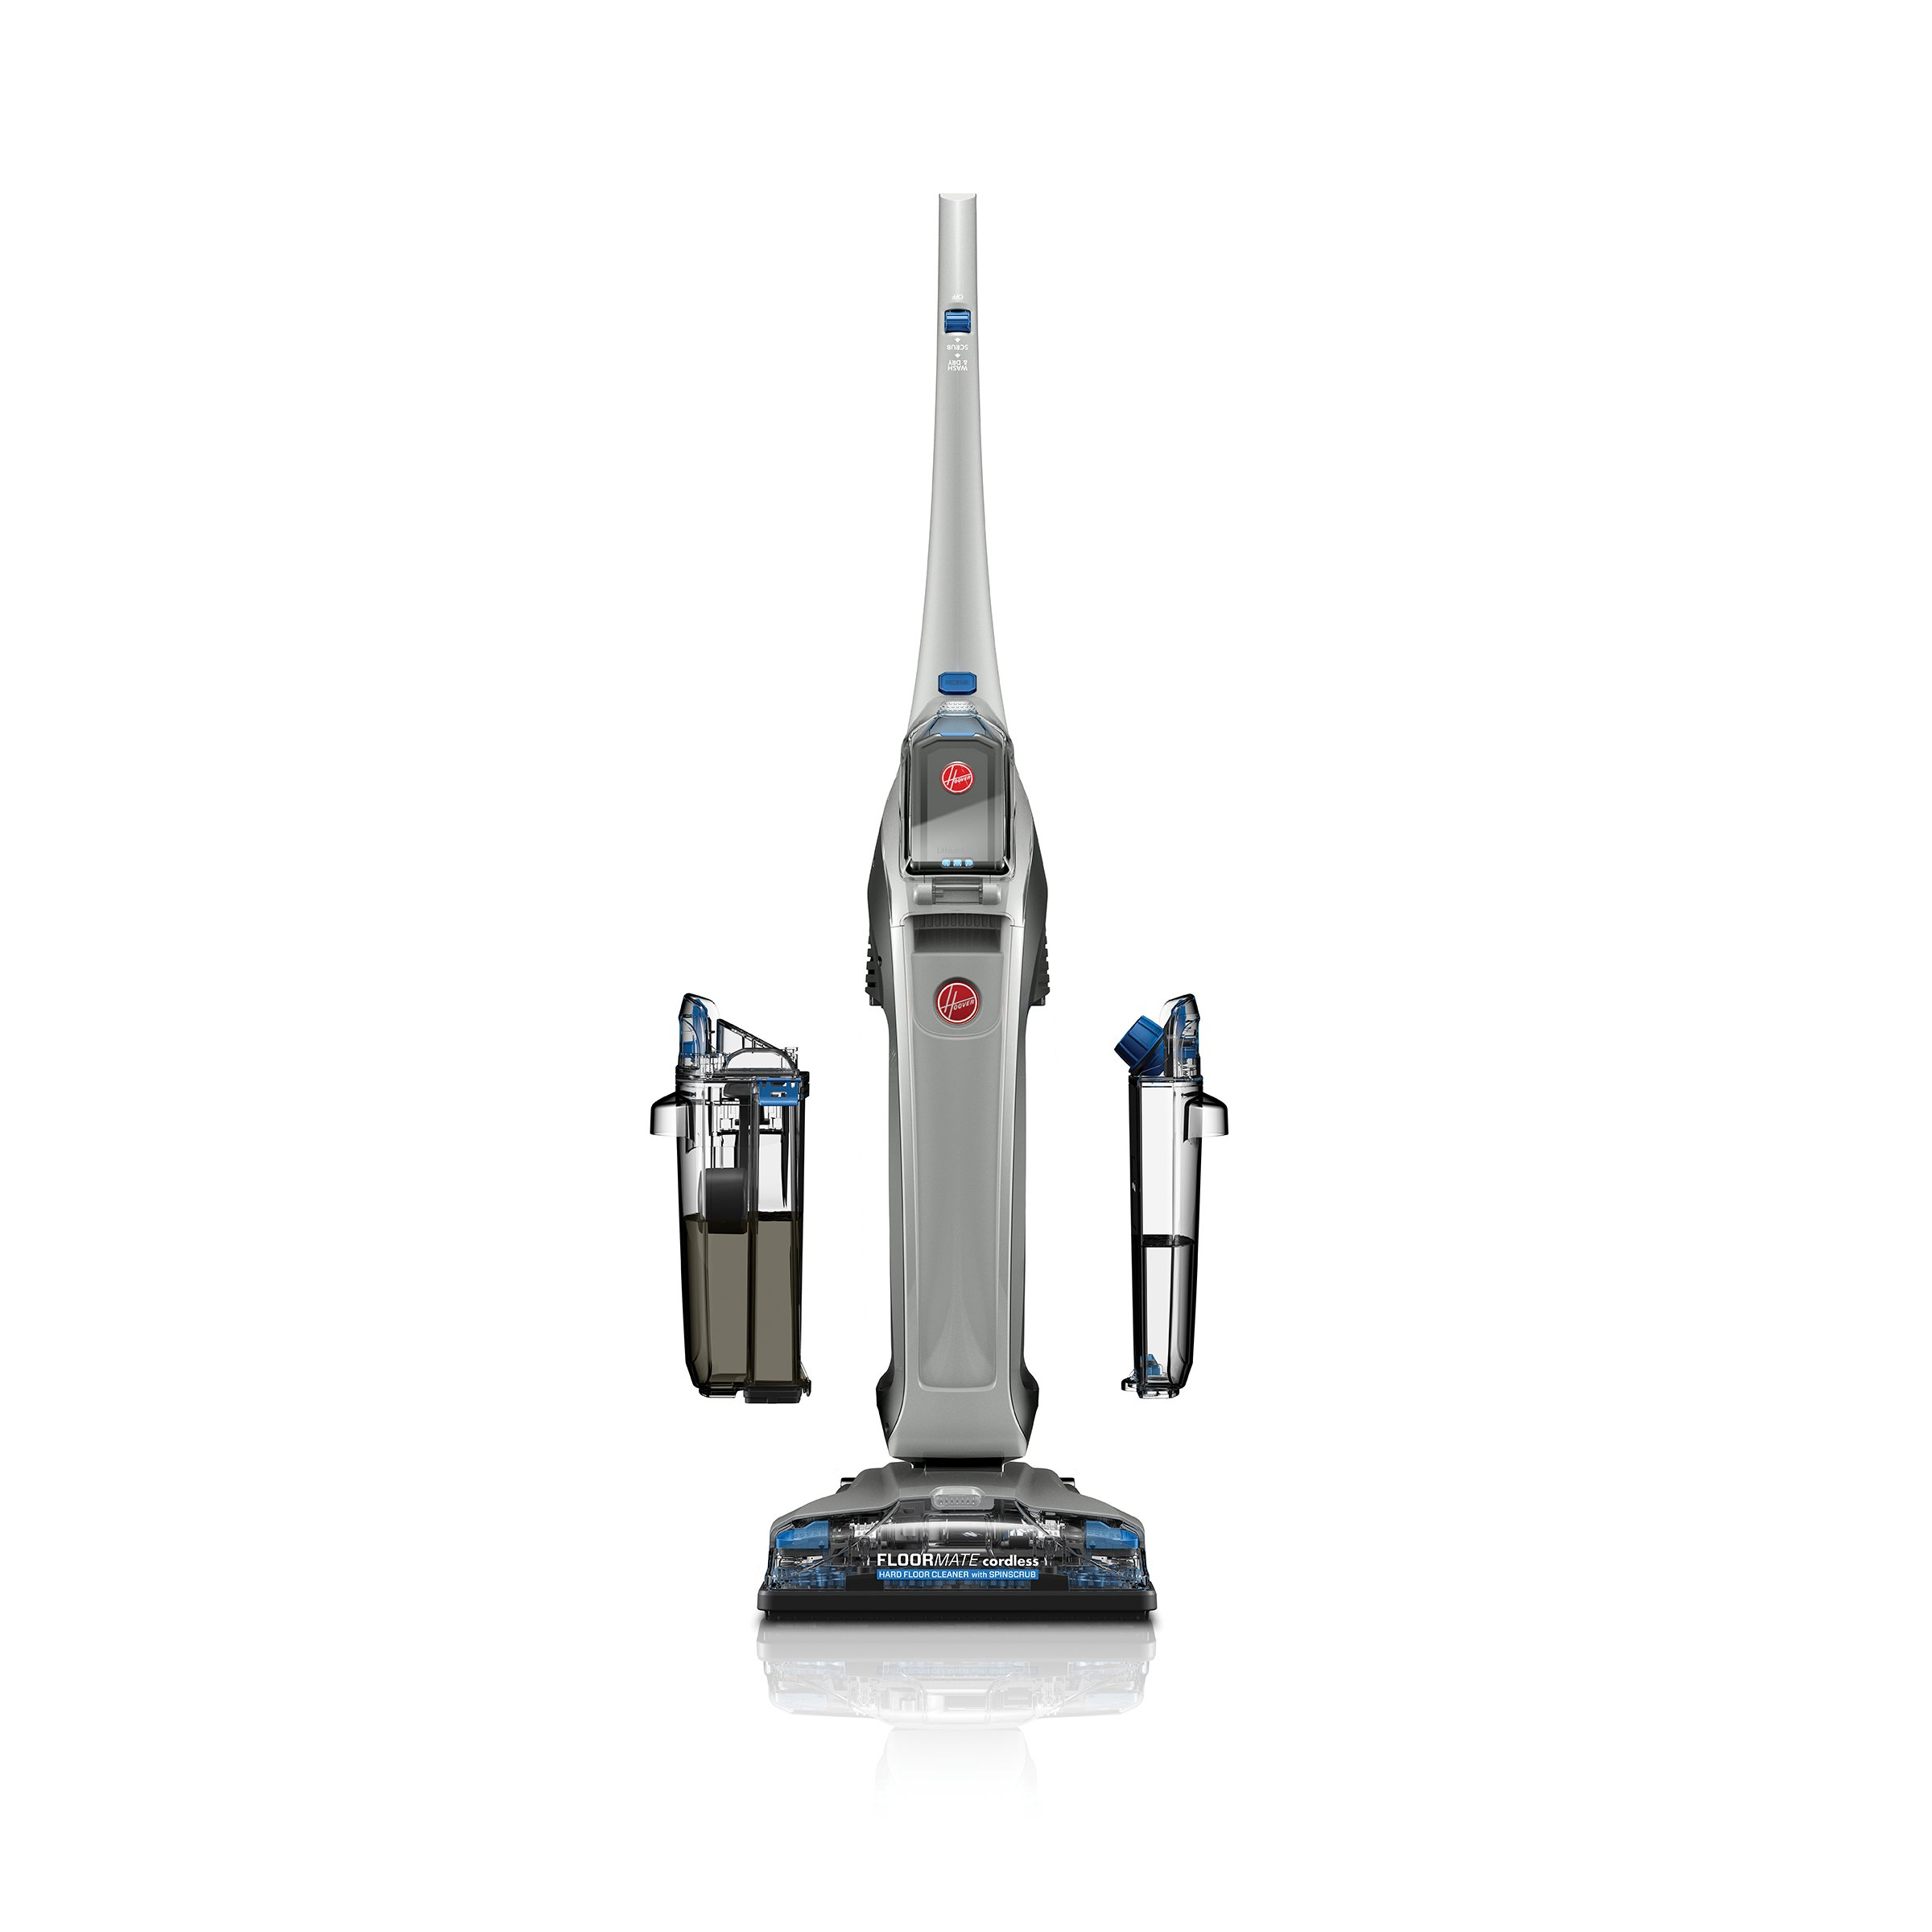 Hoover FloorMate Cordless Hard Floor Cleaner, BH55100PC by Hoover (Image #7)